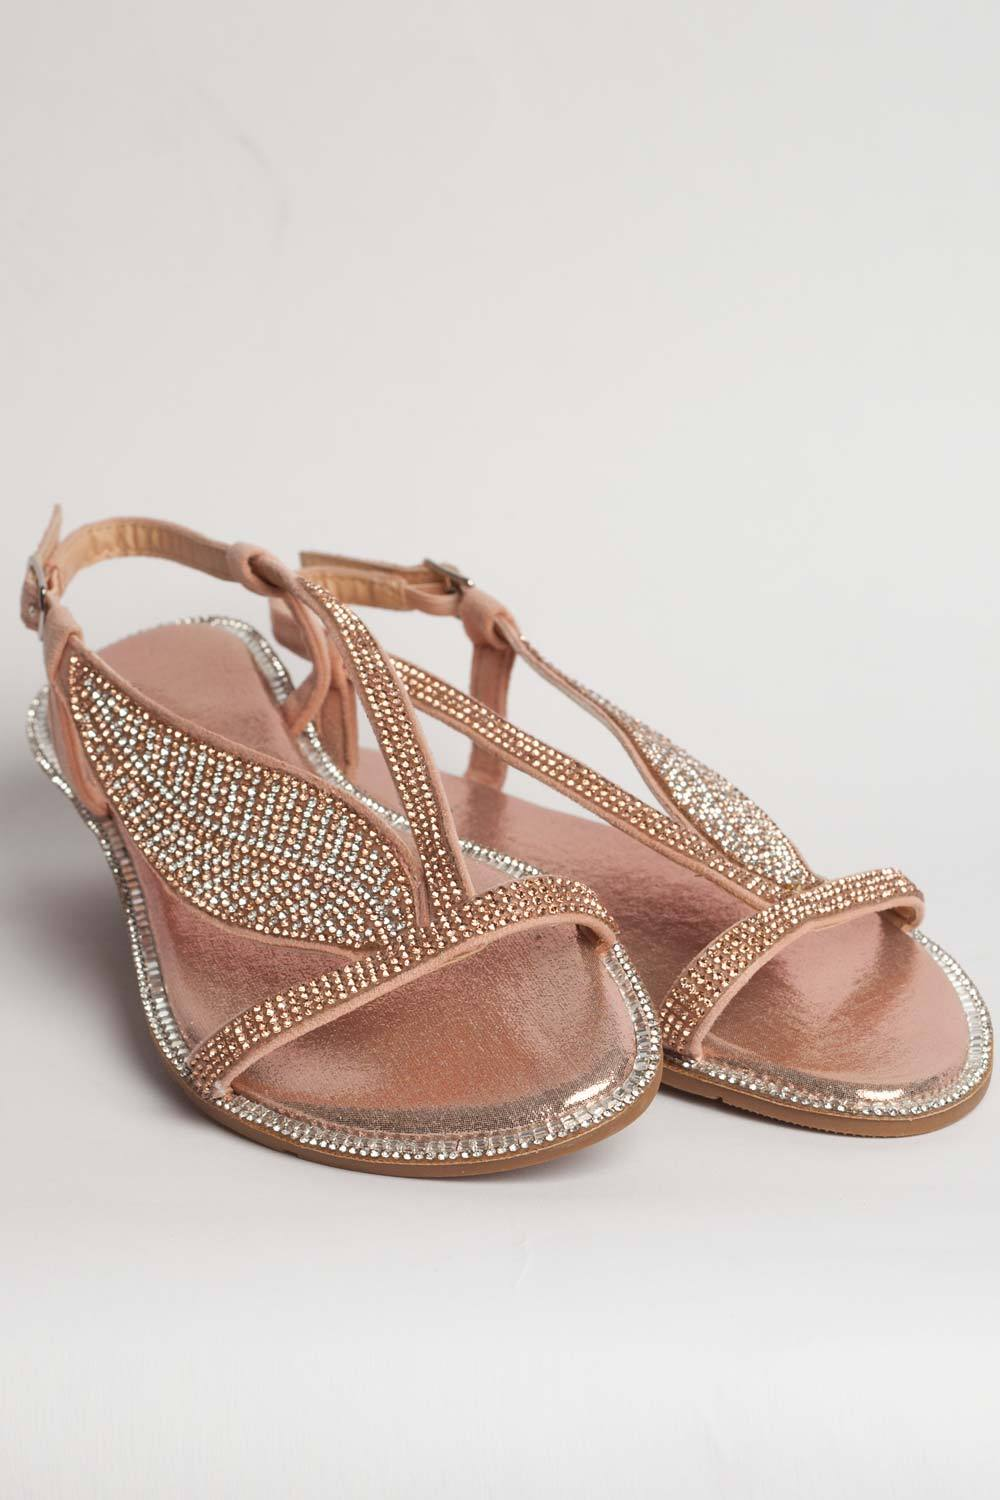 bccb15772dde Rose Gold Flat Diamante Sandals – Styledup.co.uk